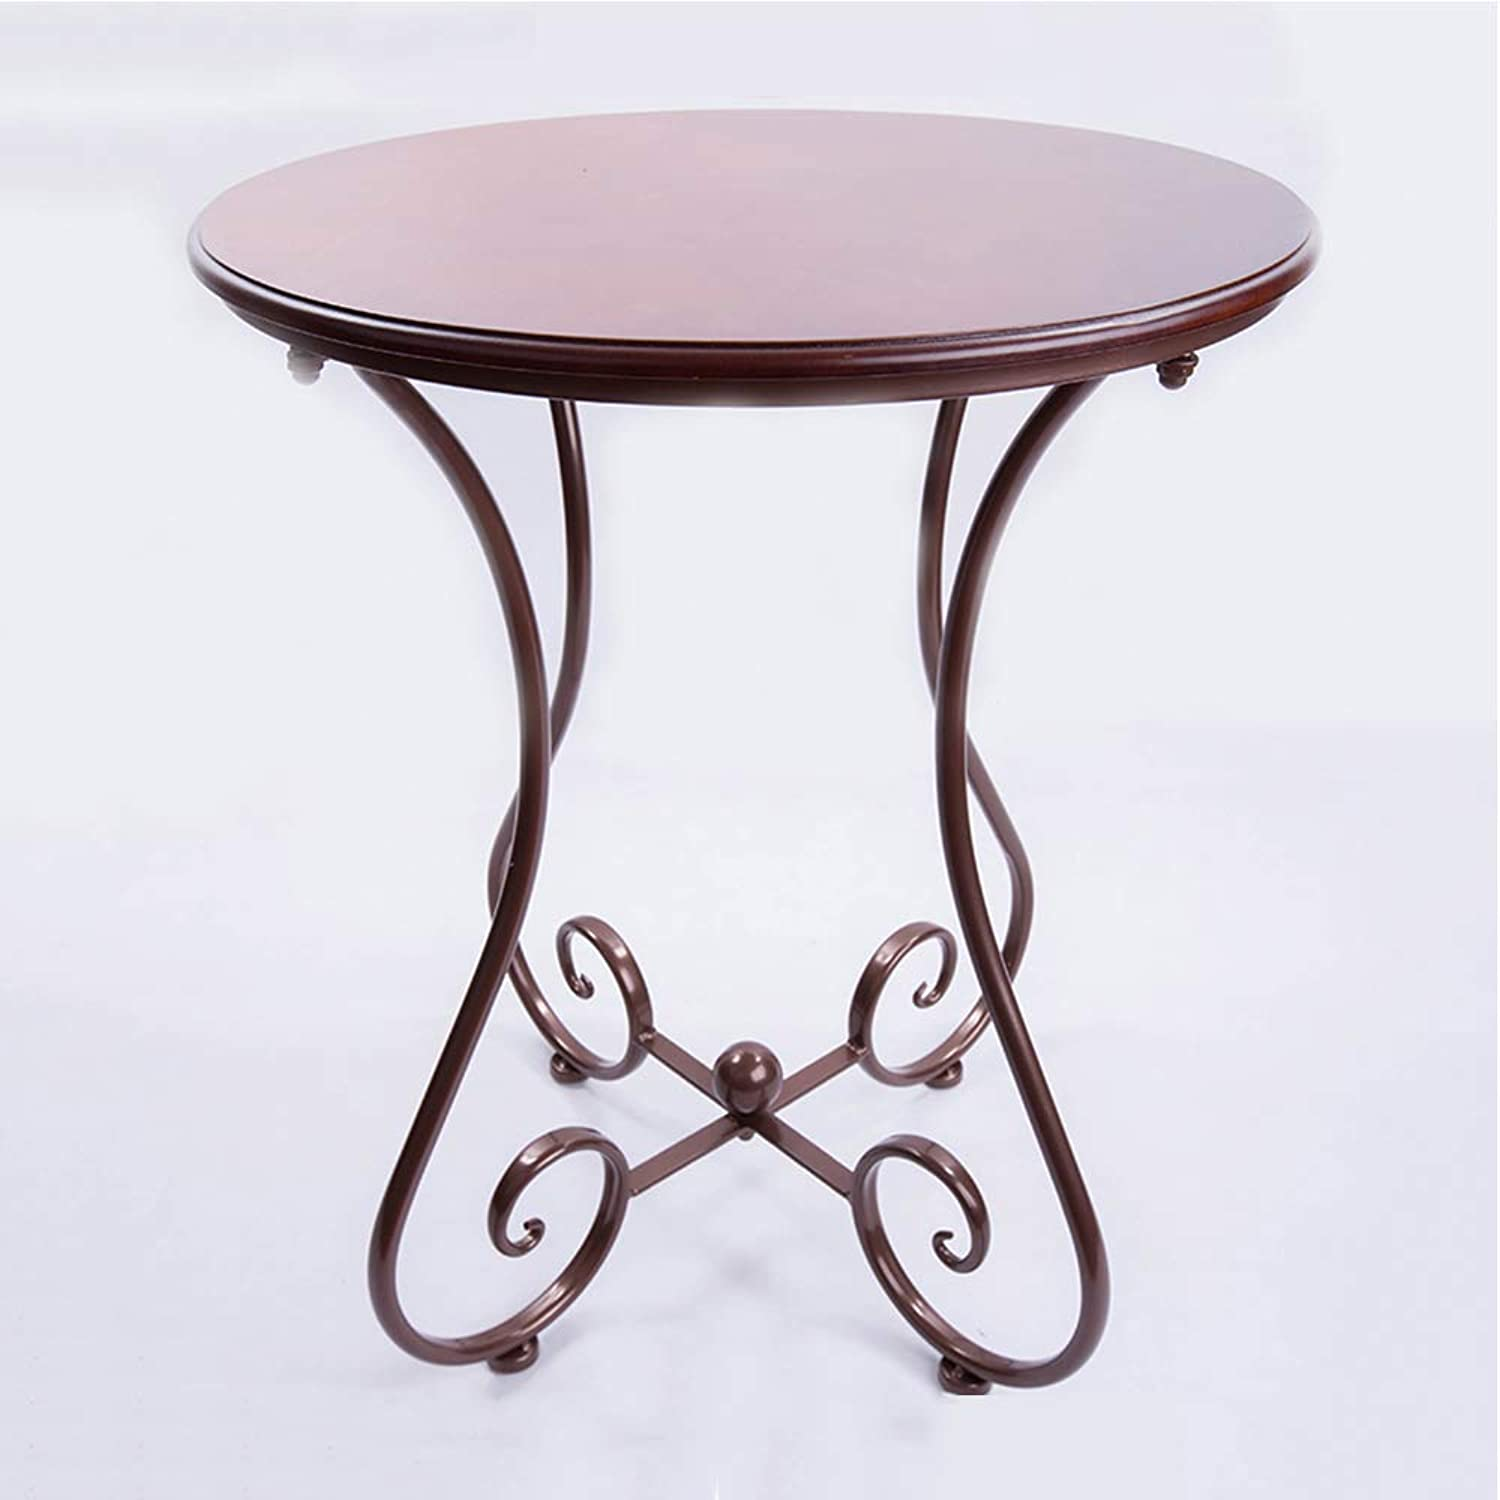 Small Coffee Table MDF Side Table European Small Round Table Multifunctional Sofa Table 3 colors (color   Brown, Size   47  55cm)